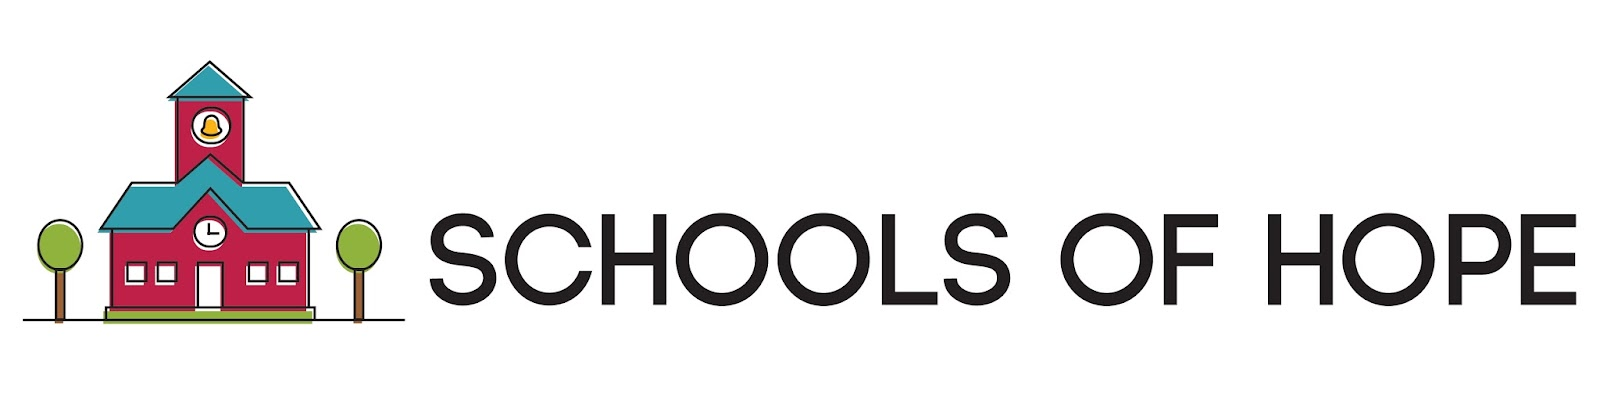 Schools of Hope AmeriCorps Project Logo